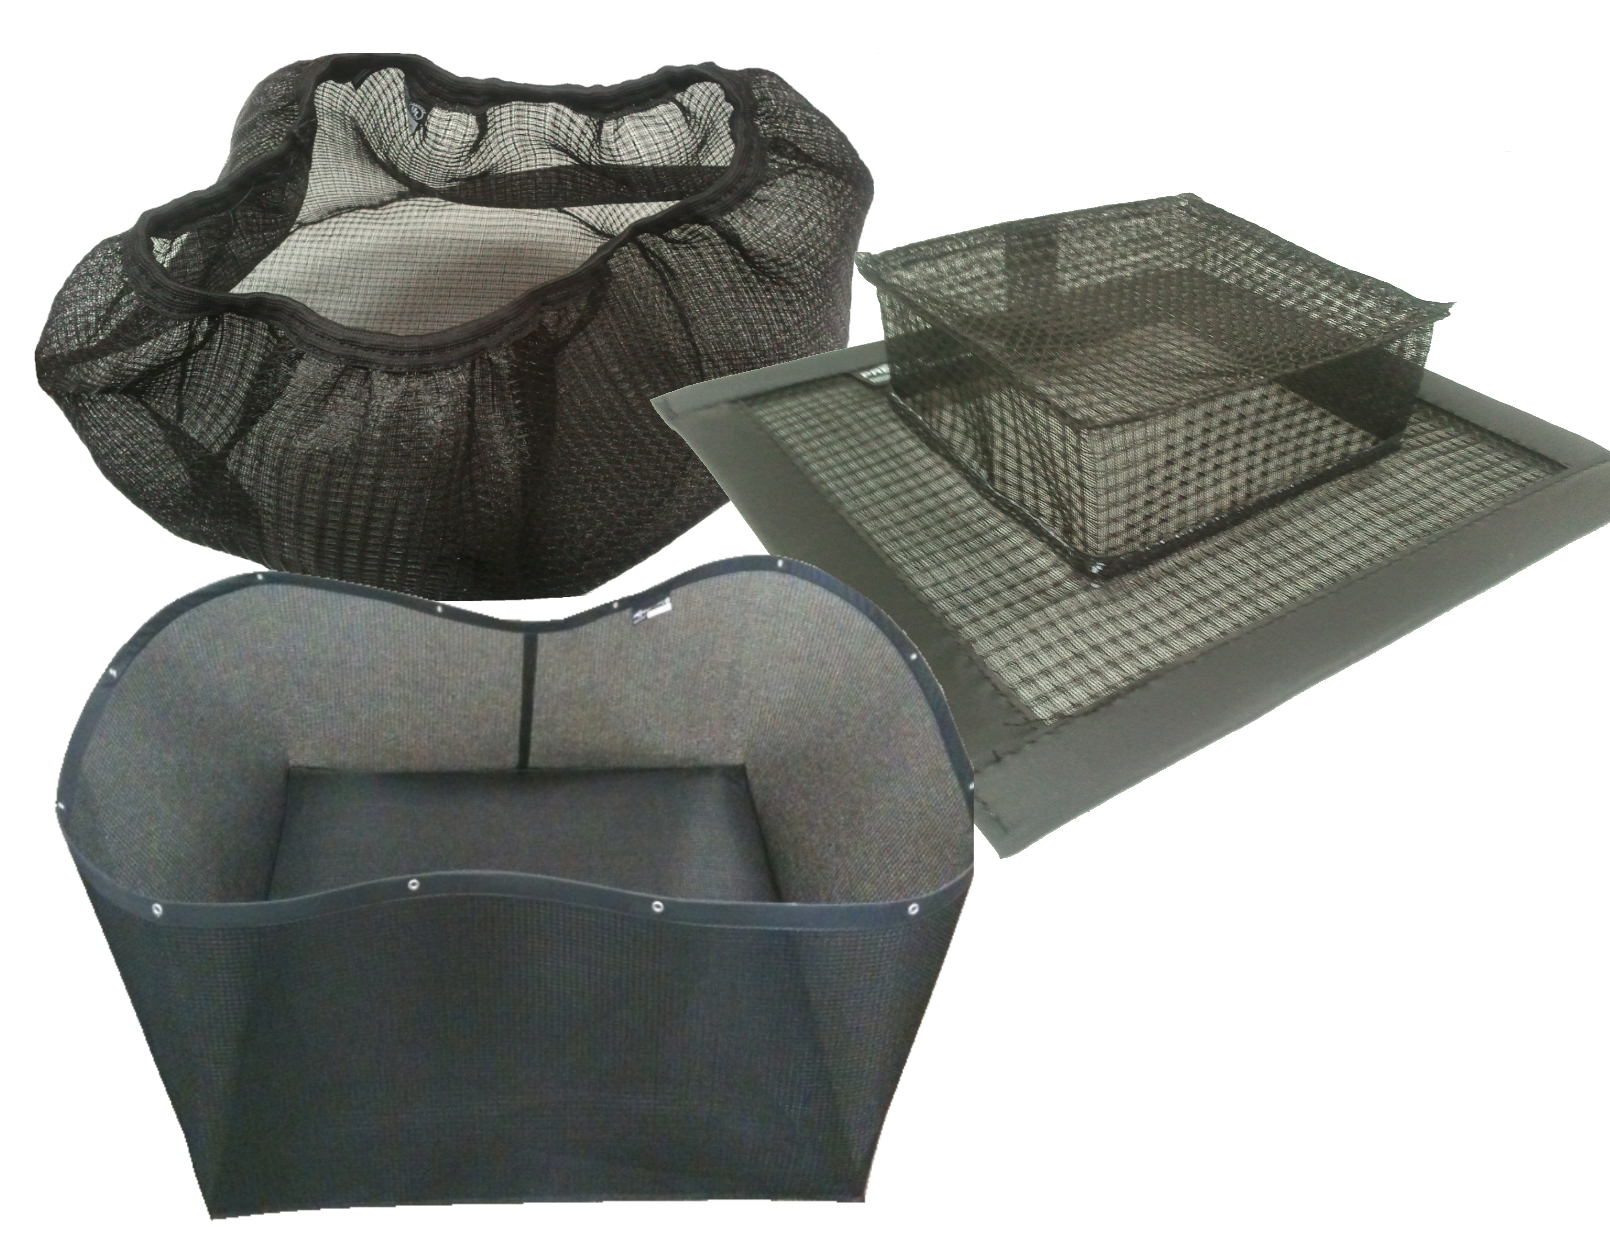 bonnet style air filters